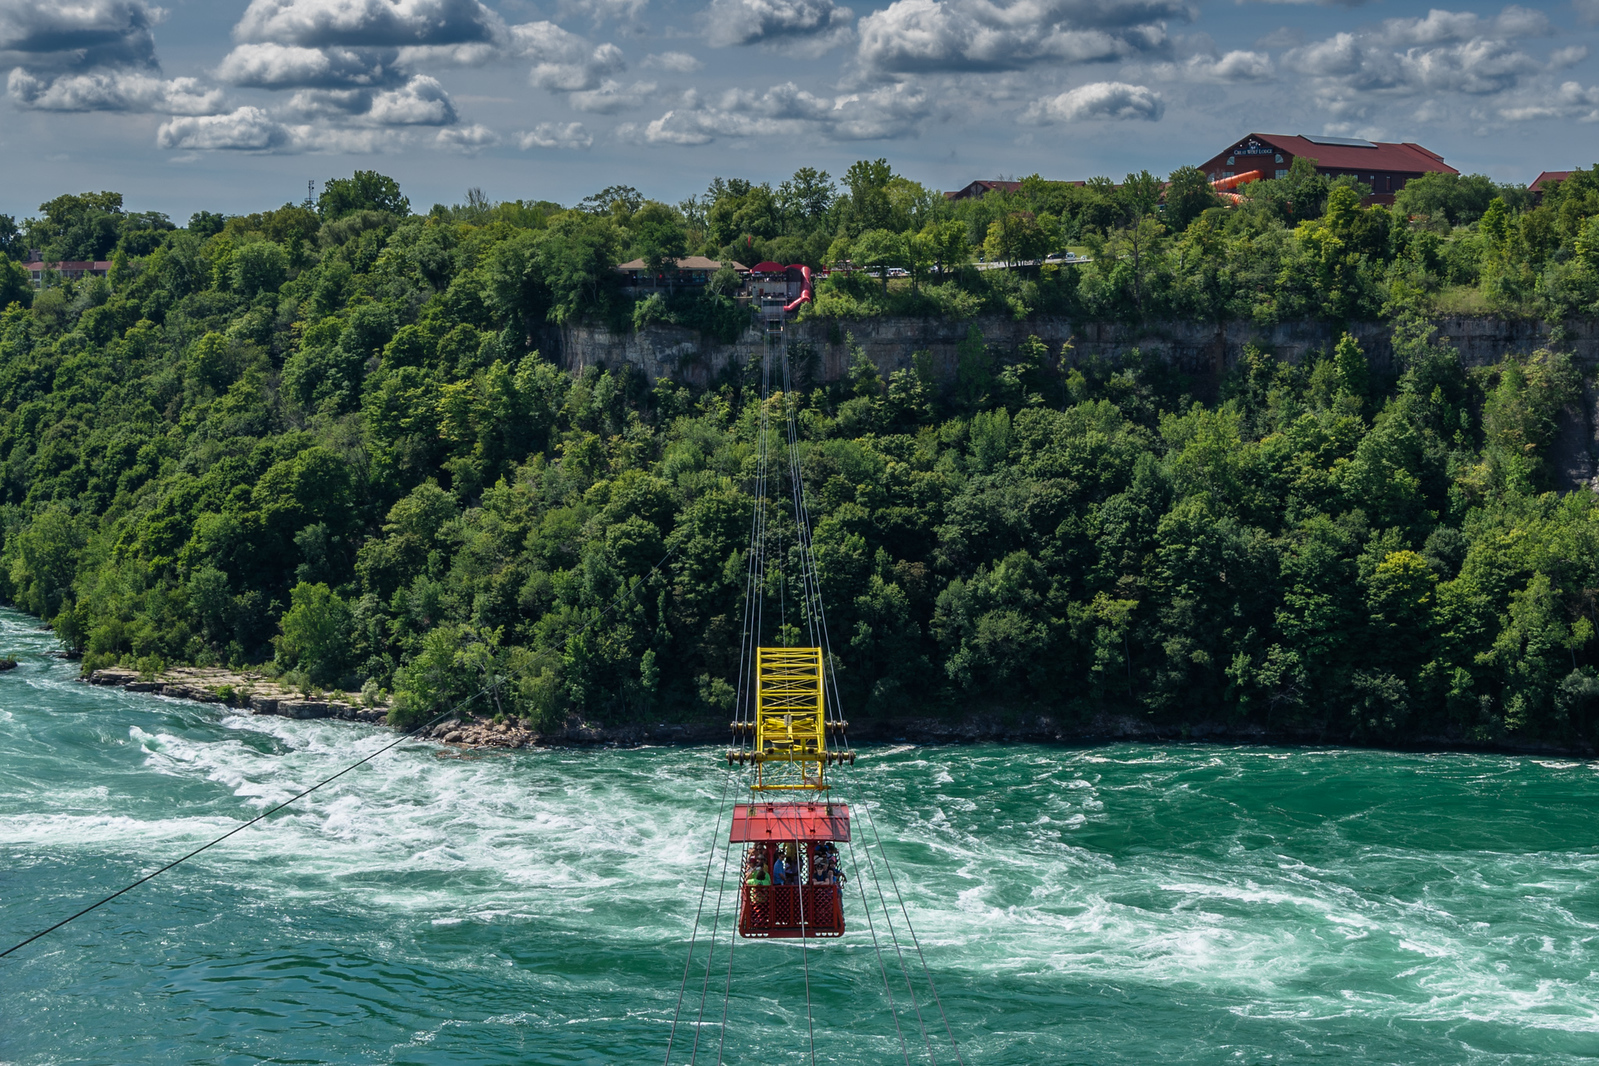 Niagara Falls Road Trip stop #10: The Whirlpool Gorge